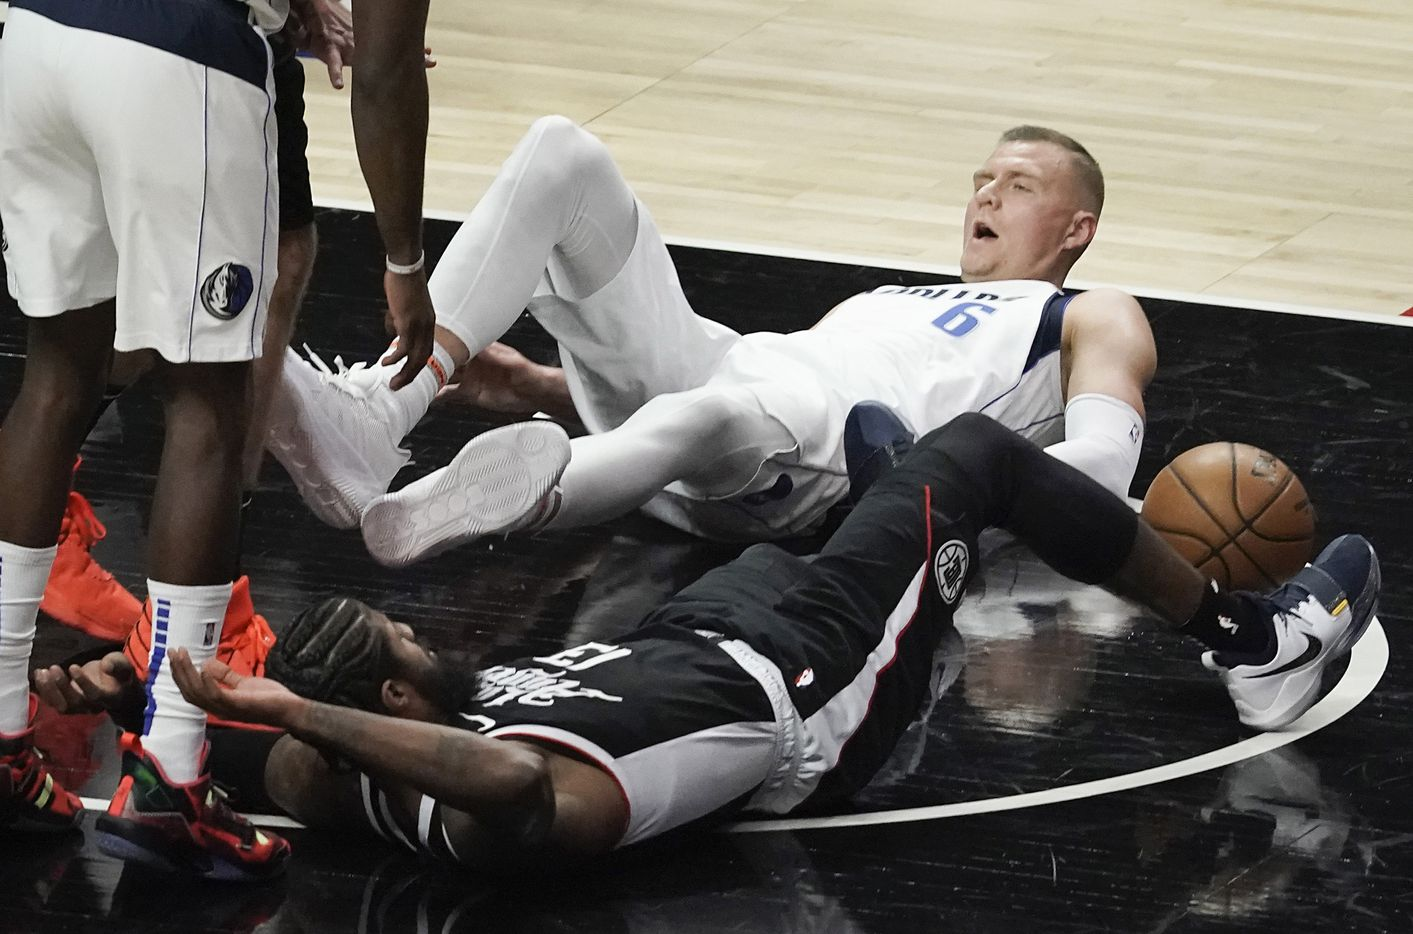 Dallas Mavericks center Kristaps Porzingis (6) tumbles to the court with LA Clippers guard Paul George (13) during the first half of an NBA playoff basketball game at Staples Center on Saturday, May 22, 2021, in Los Angeles.